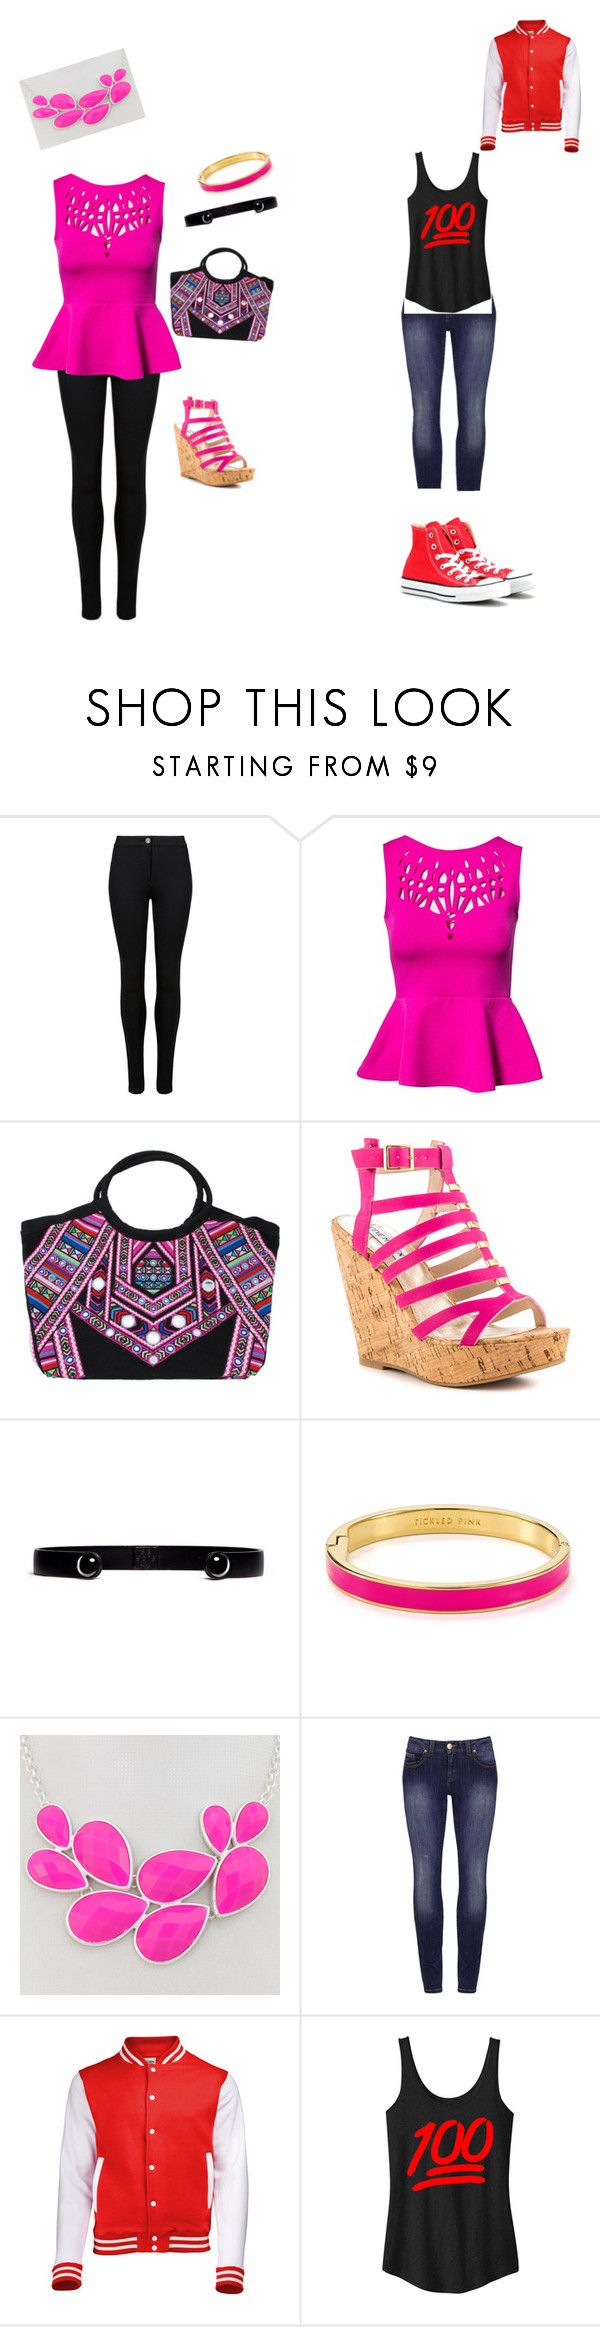 """liv(left) and maddie(right) Rooney outfit"" by moses-faith ❤ liked on Polyvore featuring beauty, M&S, Oneness, Mara Hoffman, Steve Madden, Ela Stone, Kate Spade and Converse"